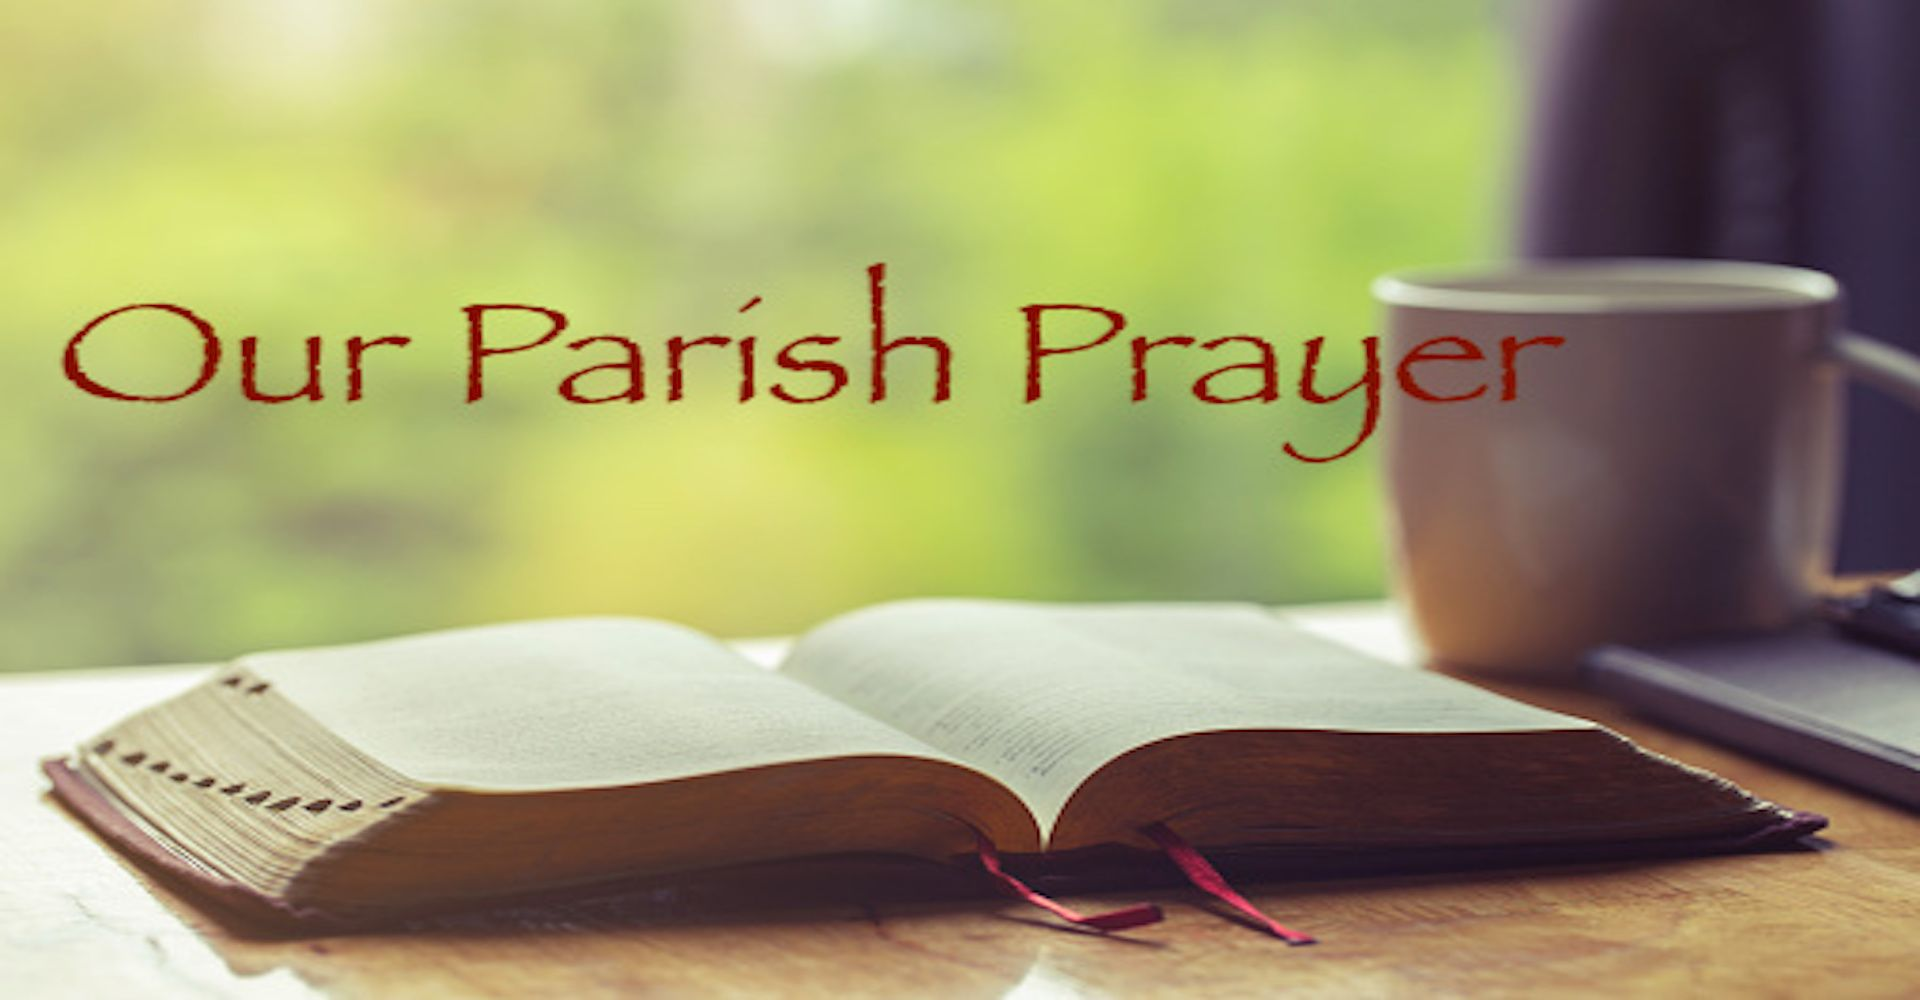 Our Parish Prayer